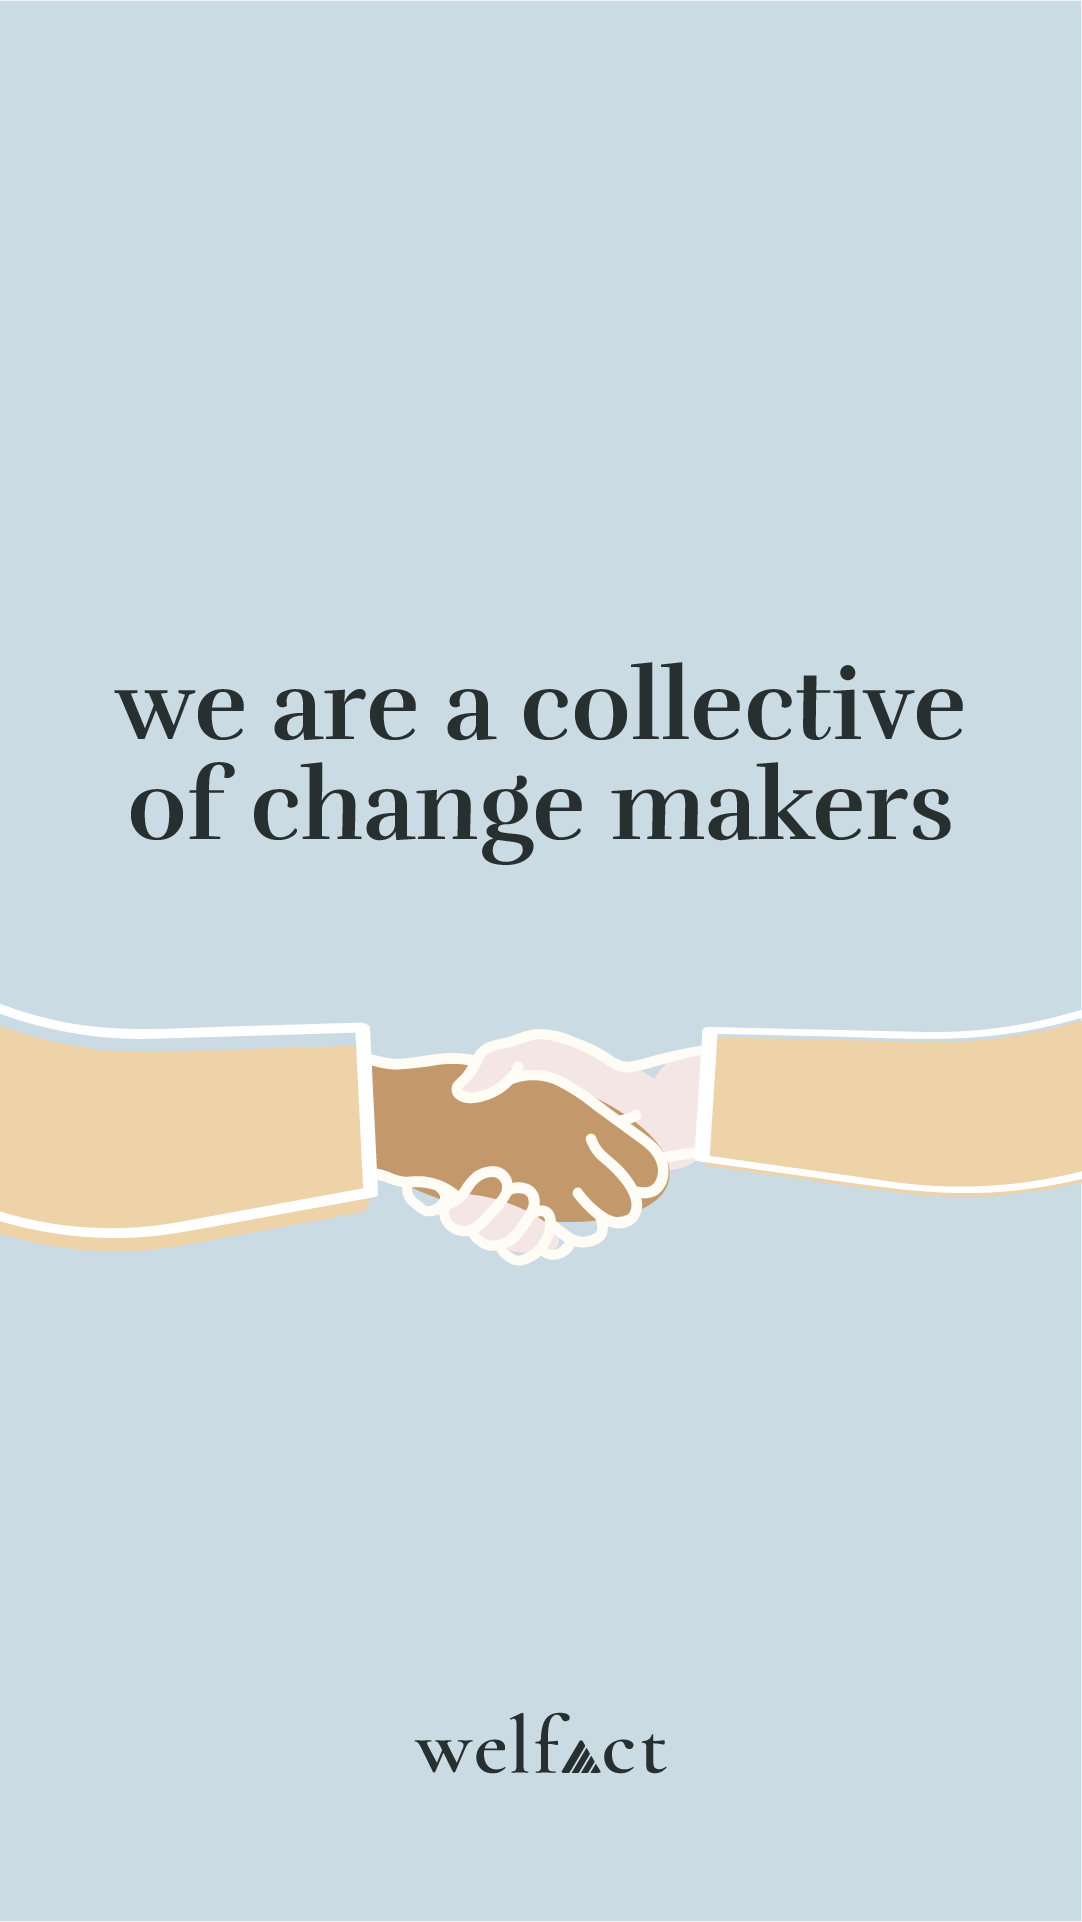 Welfact Assets - Change Makers, Blue